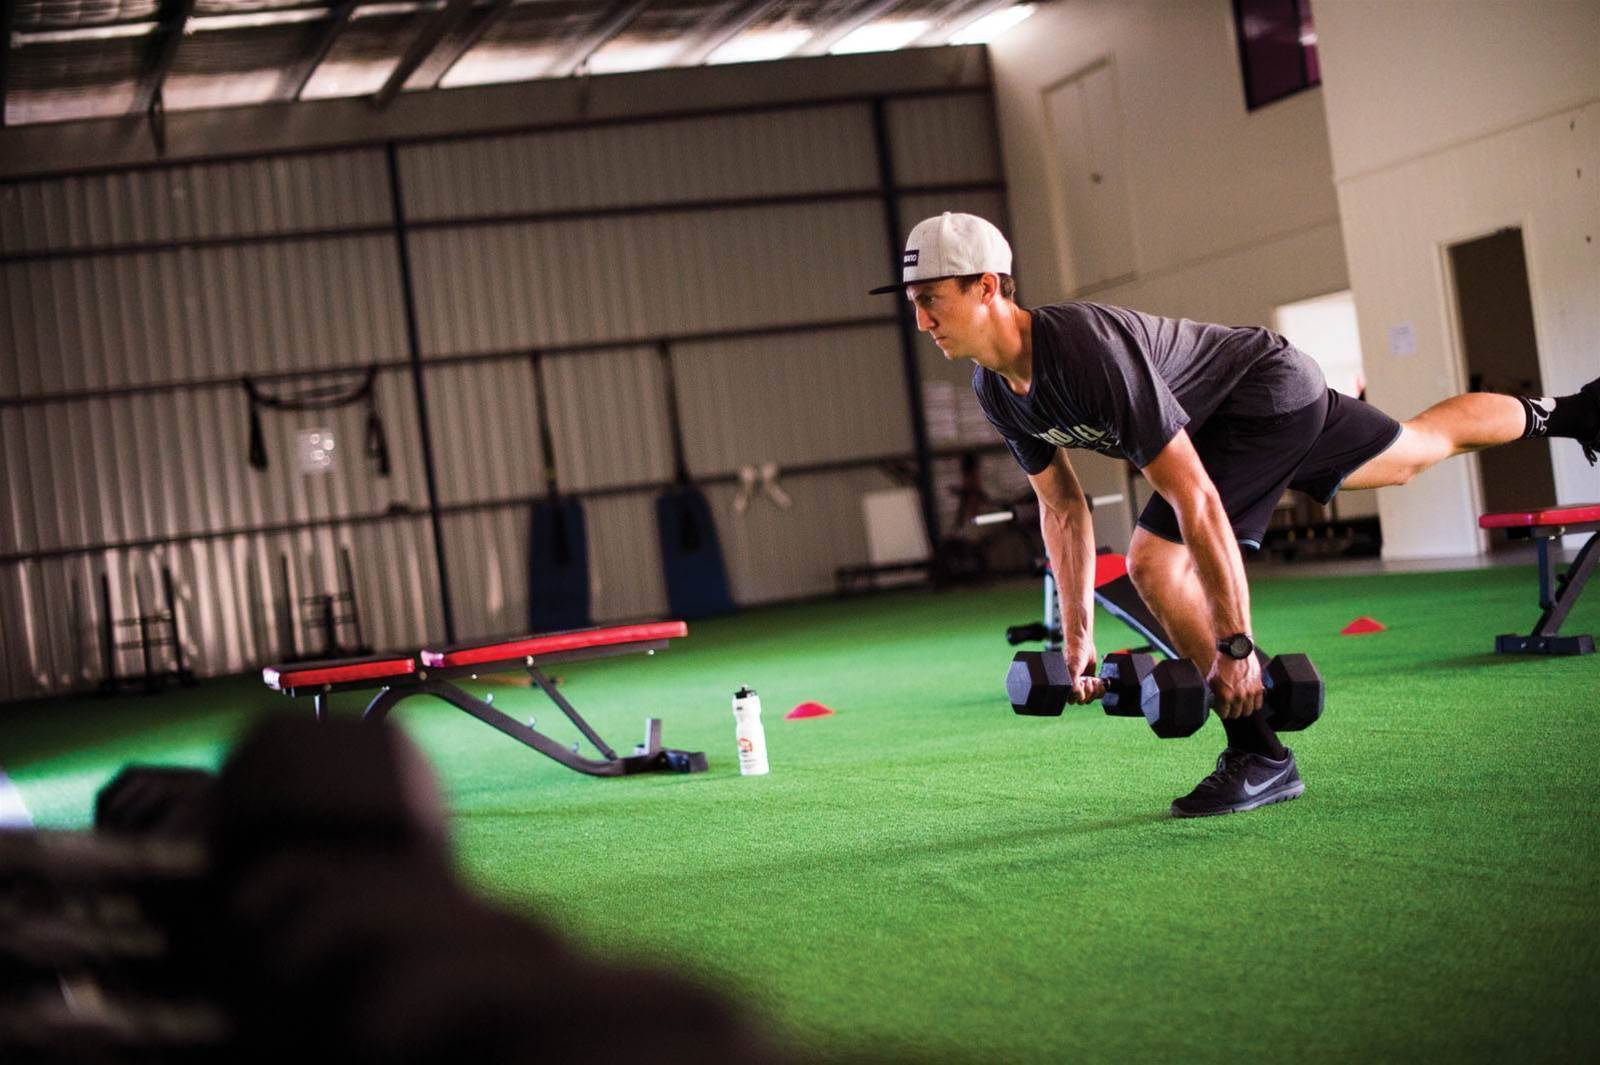 Pump up your strength and conditioning training